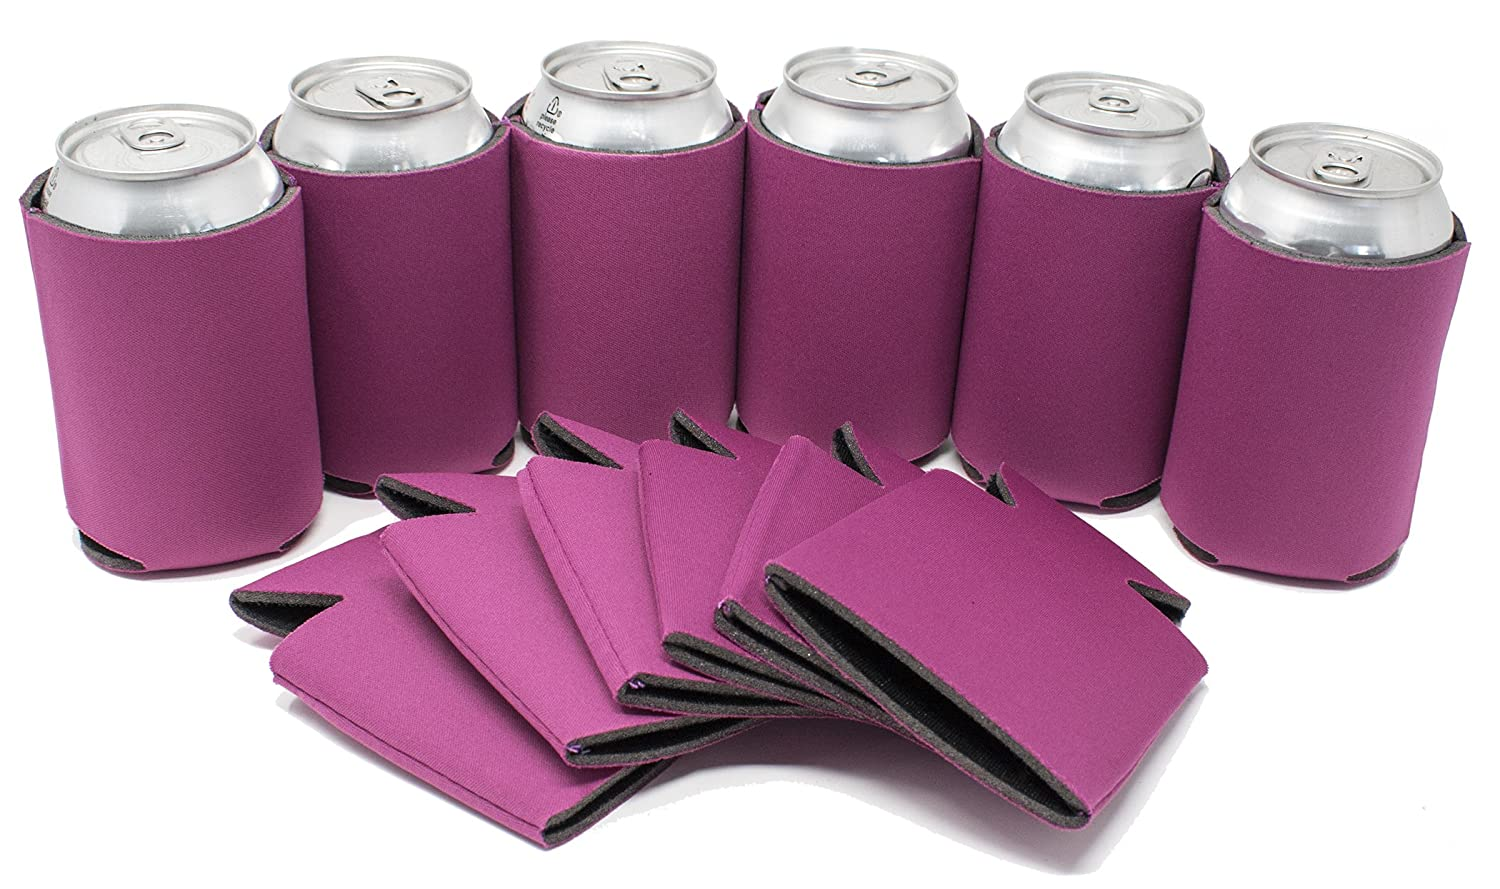 Amazon.com: TahoeBay 12 Can Sleeves - Fuchsia Beer Coolies for Cans ...